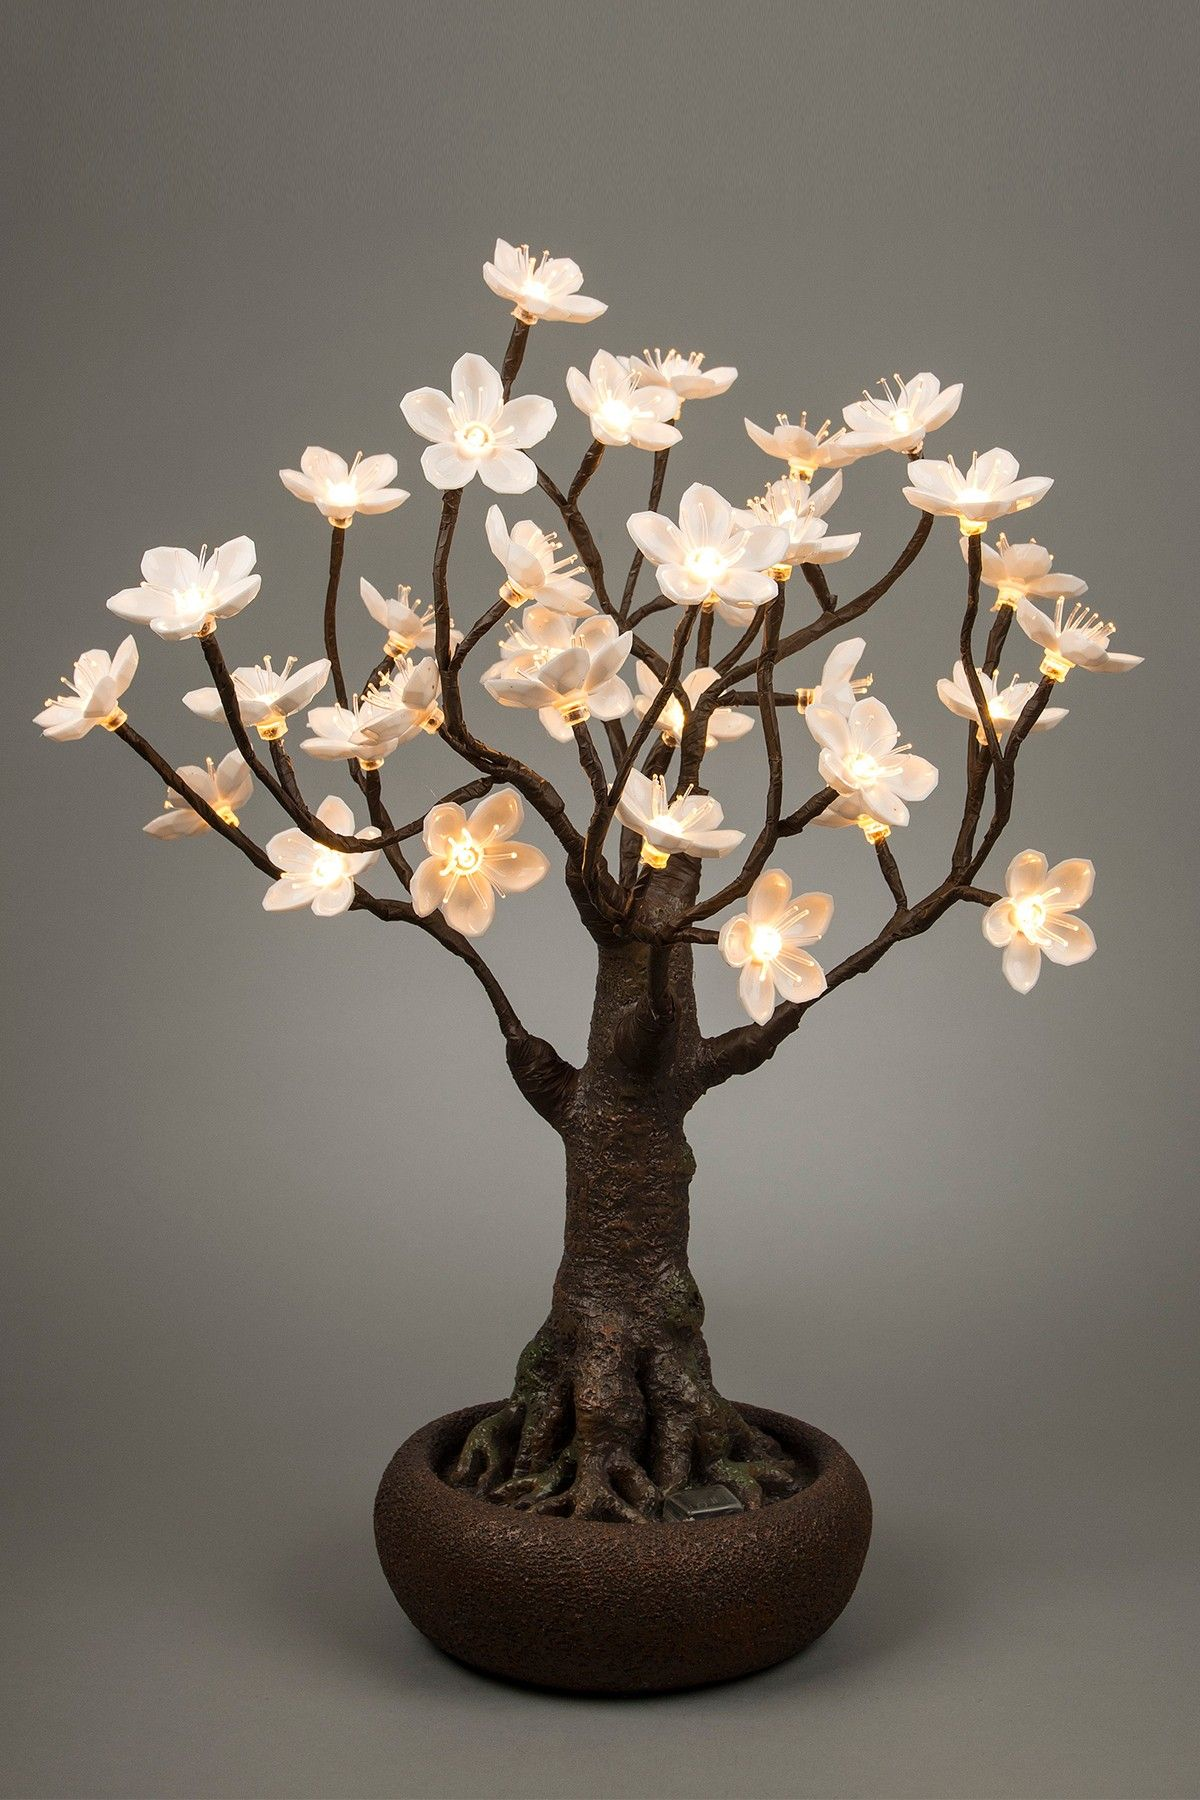 Battery Operated Bonsai Tree With 36 Warm White Led Lights By Gerson